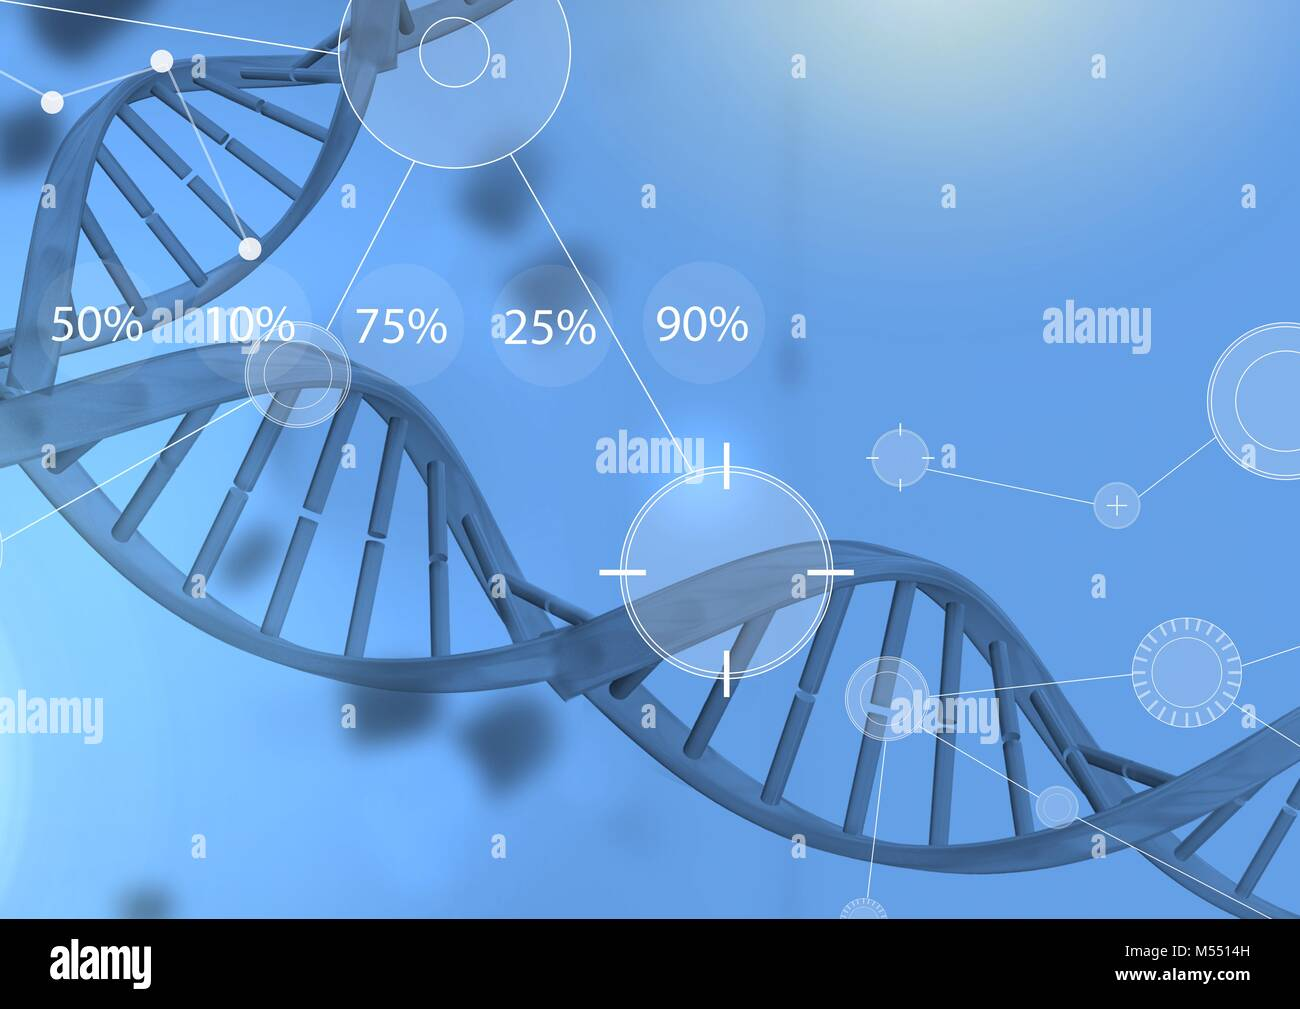 Interface overlay of connection statistics graphics with medical science DNA genetics background - Stock Image